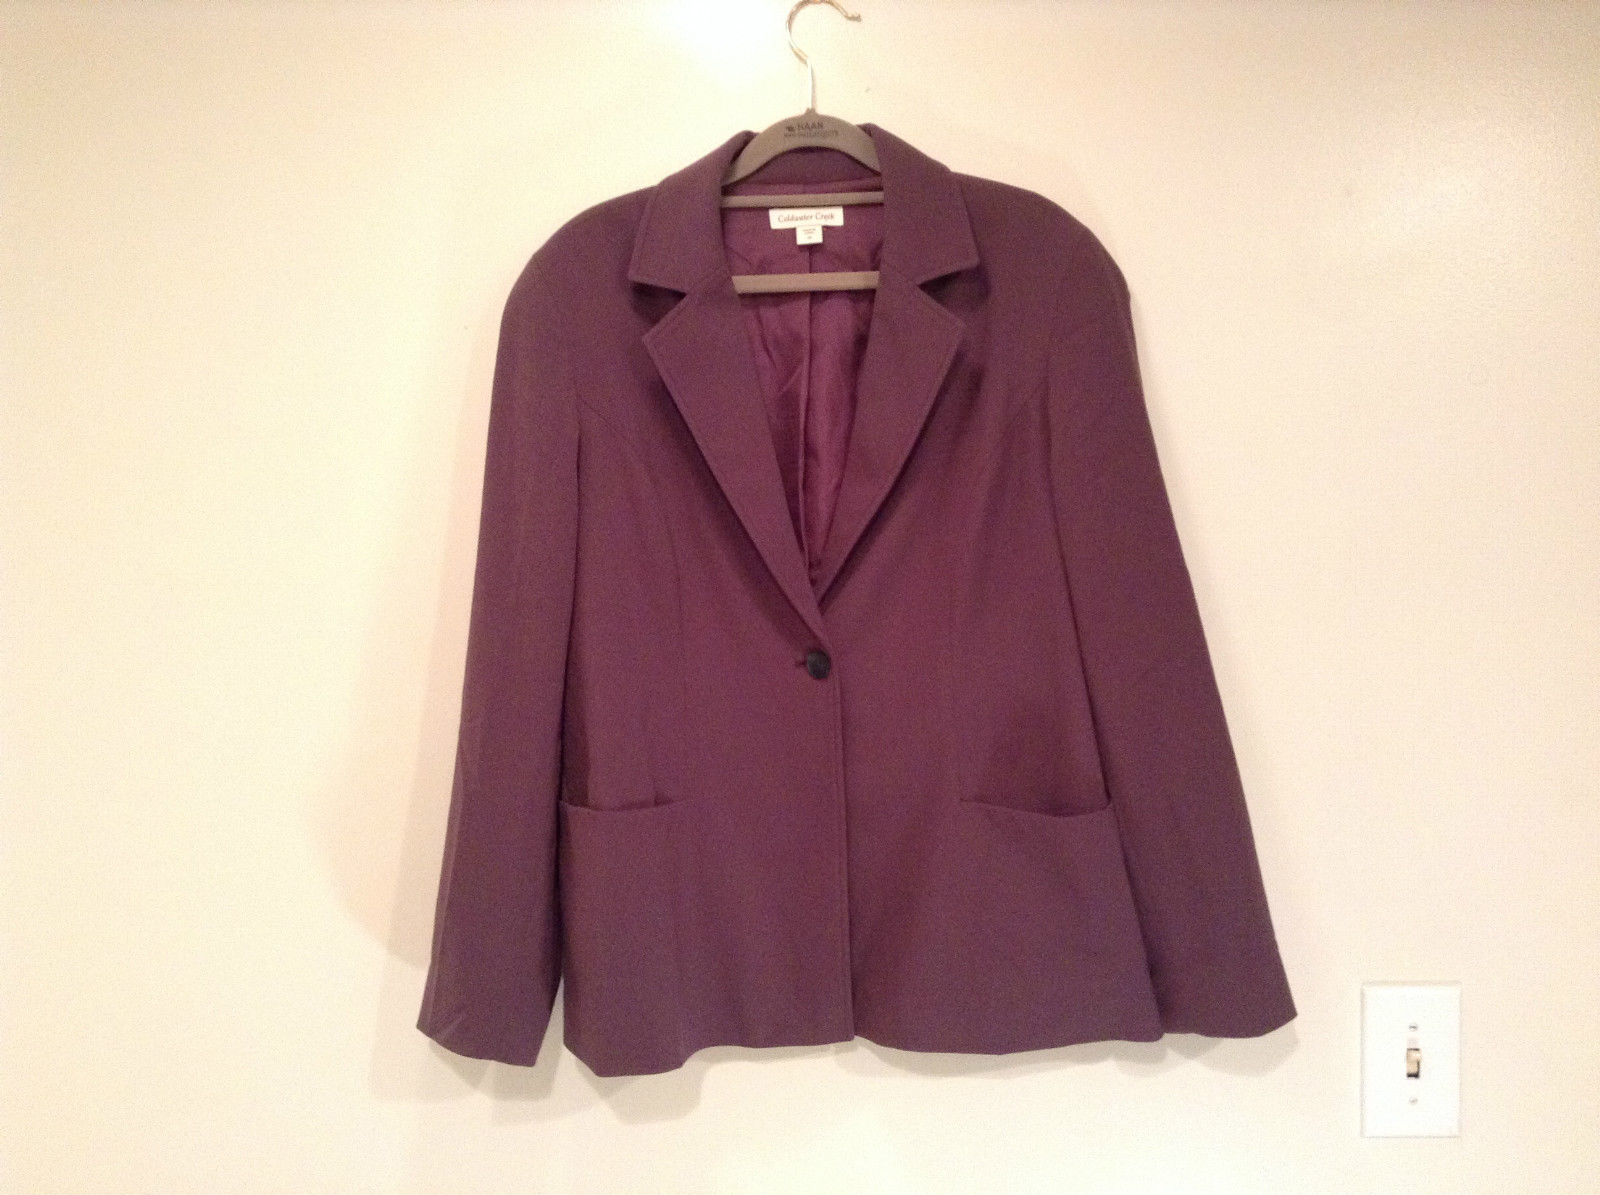 Coldwater Creek One Button Closure Violet Lined Blazer Size 14 Two Pockets